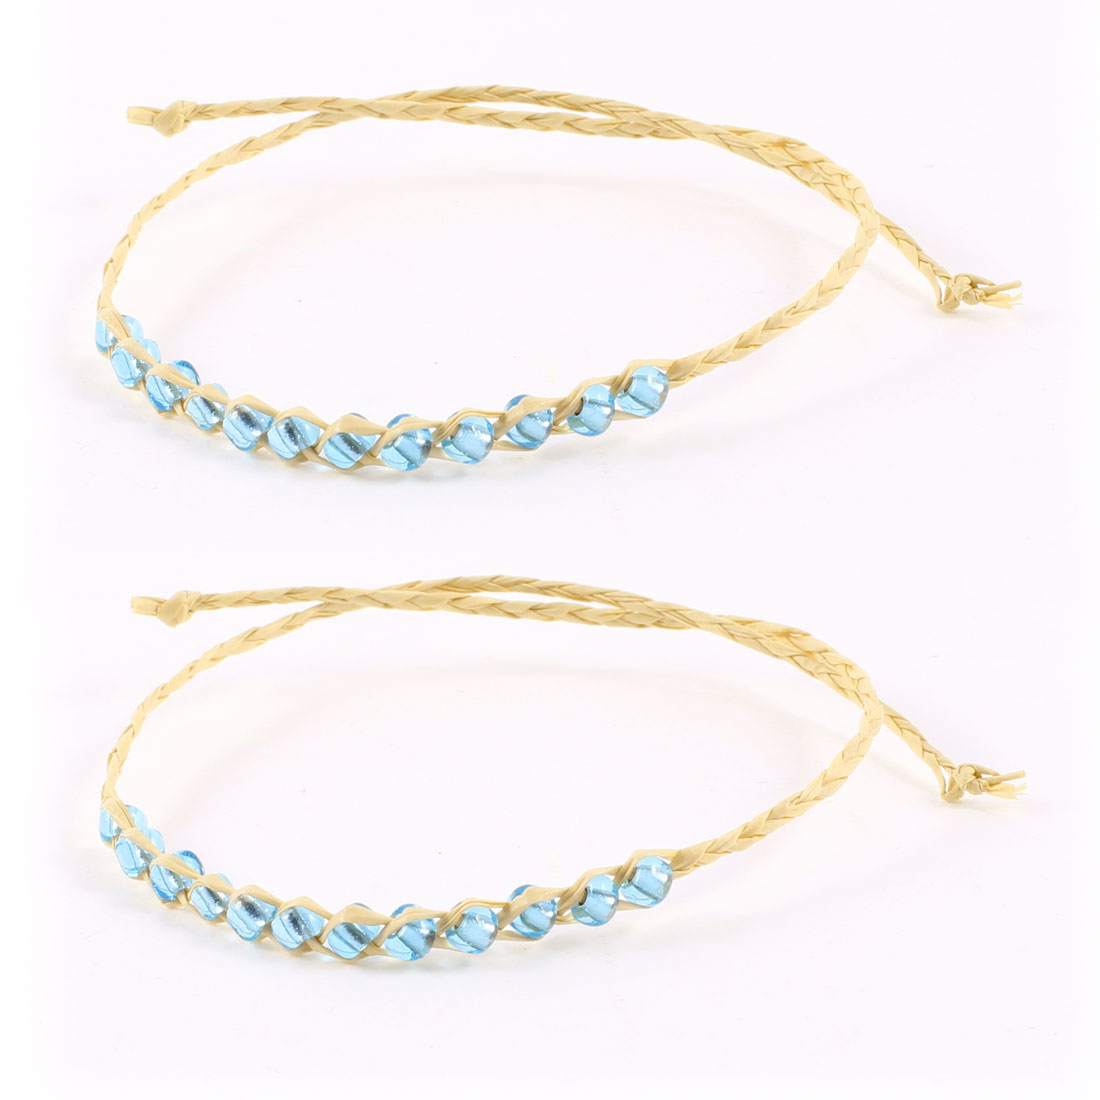 Beige Light Blue Plastic Beads Detailing Self Tie Straw Wrist Bracelet 2 Pcs